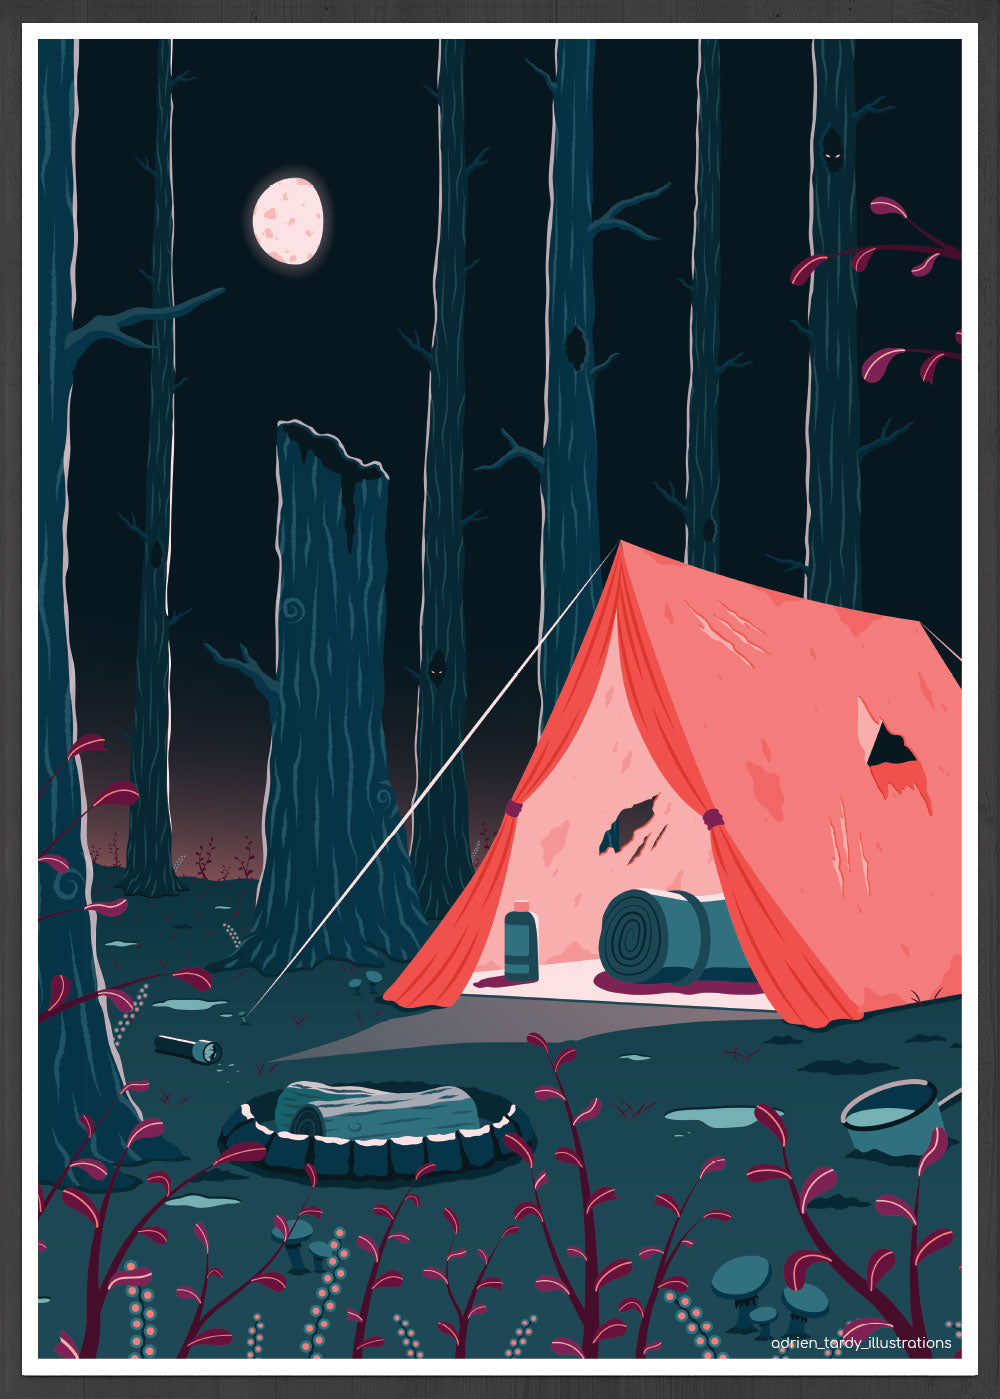 Tent Camping Illustration Print in frame